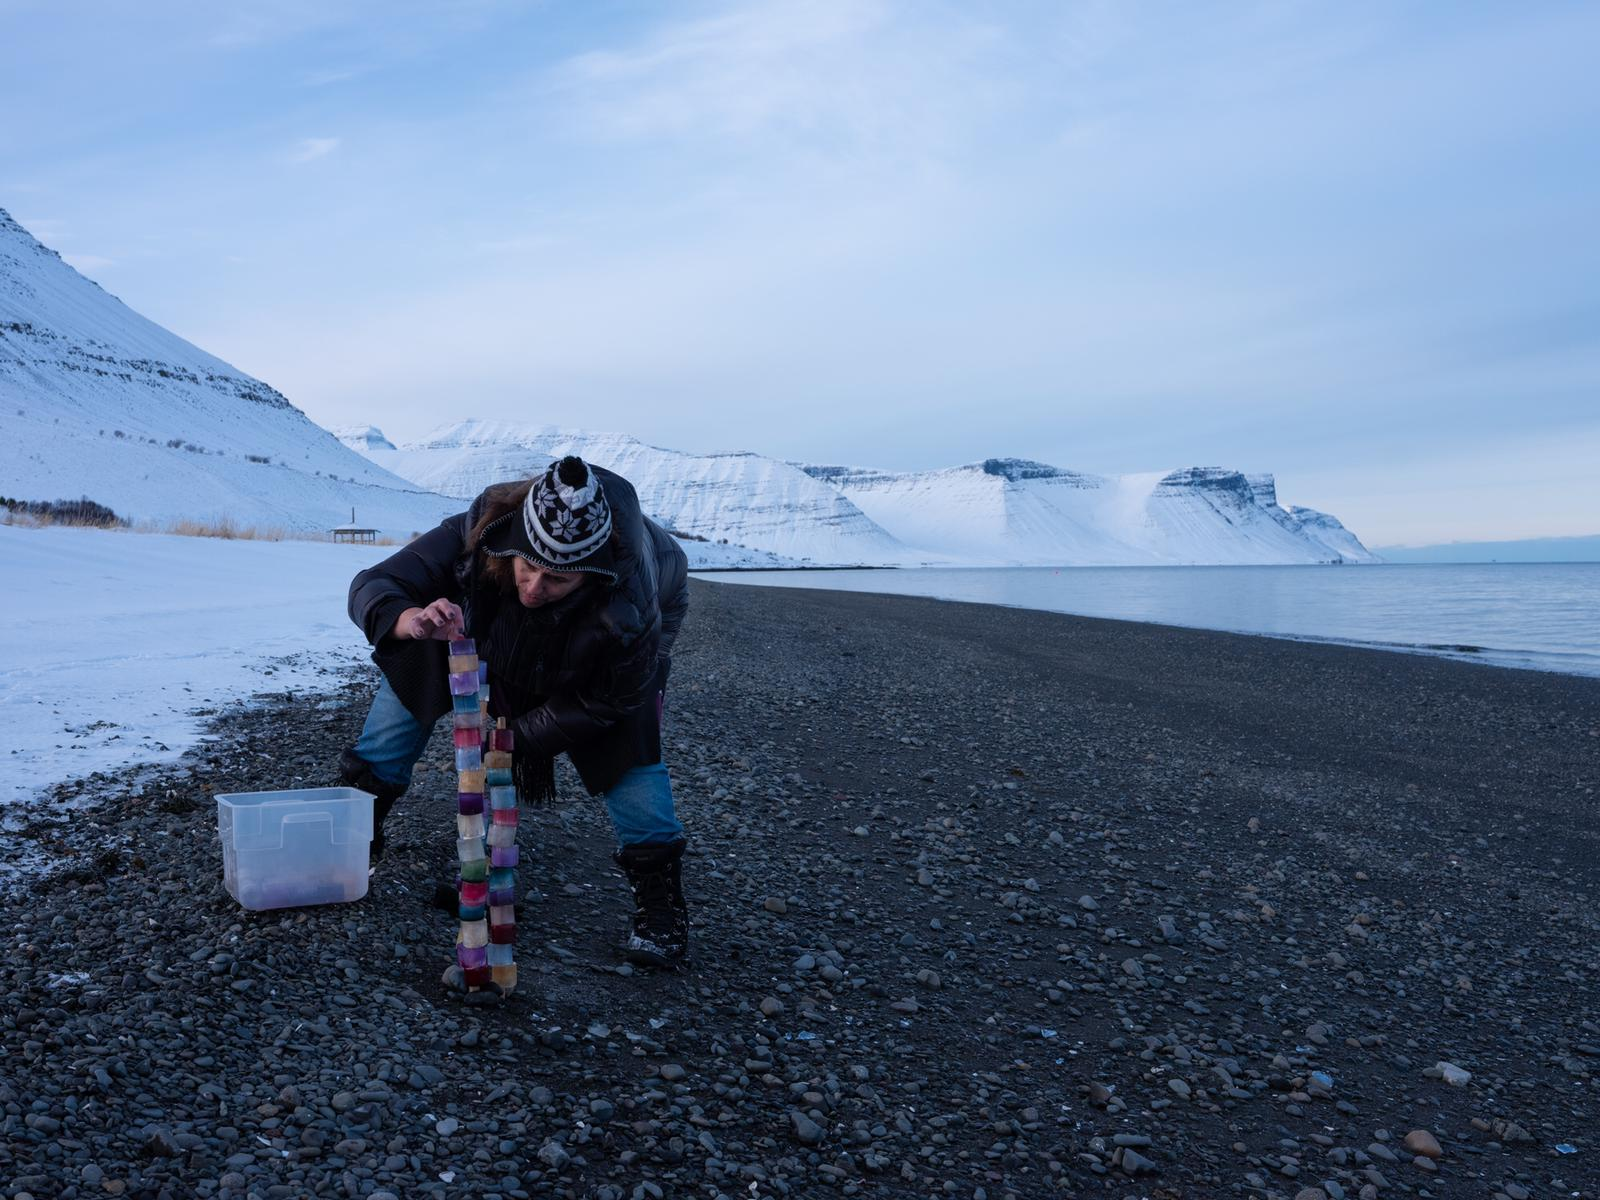 Shot Glass installation on the beach of Þingeyri, Westfjords, Iceland, February 2019.